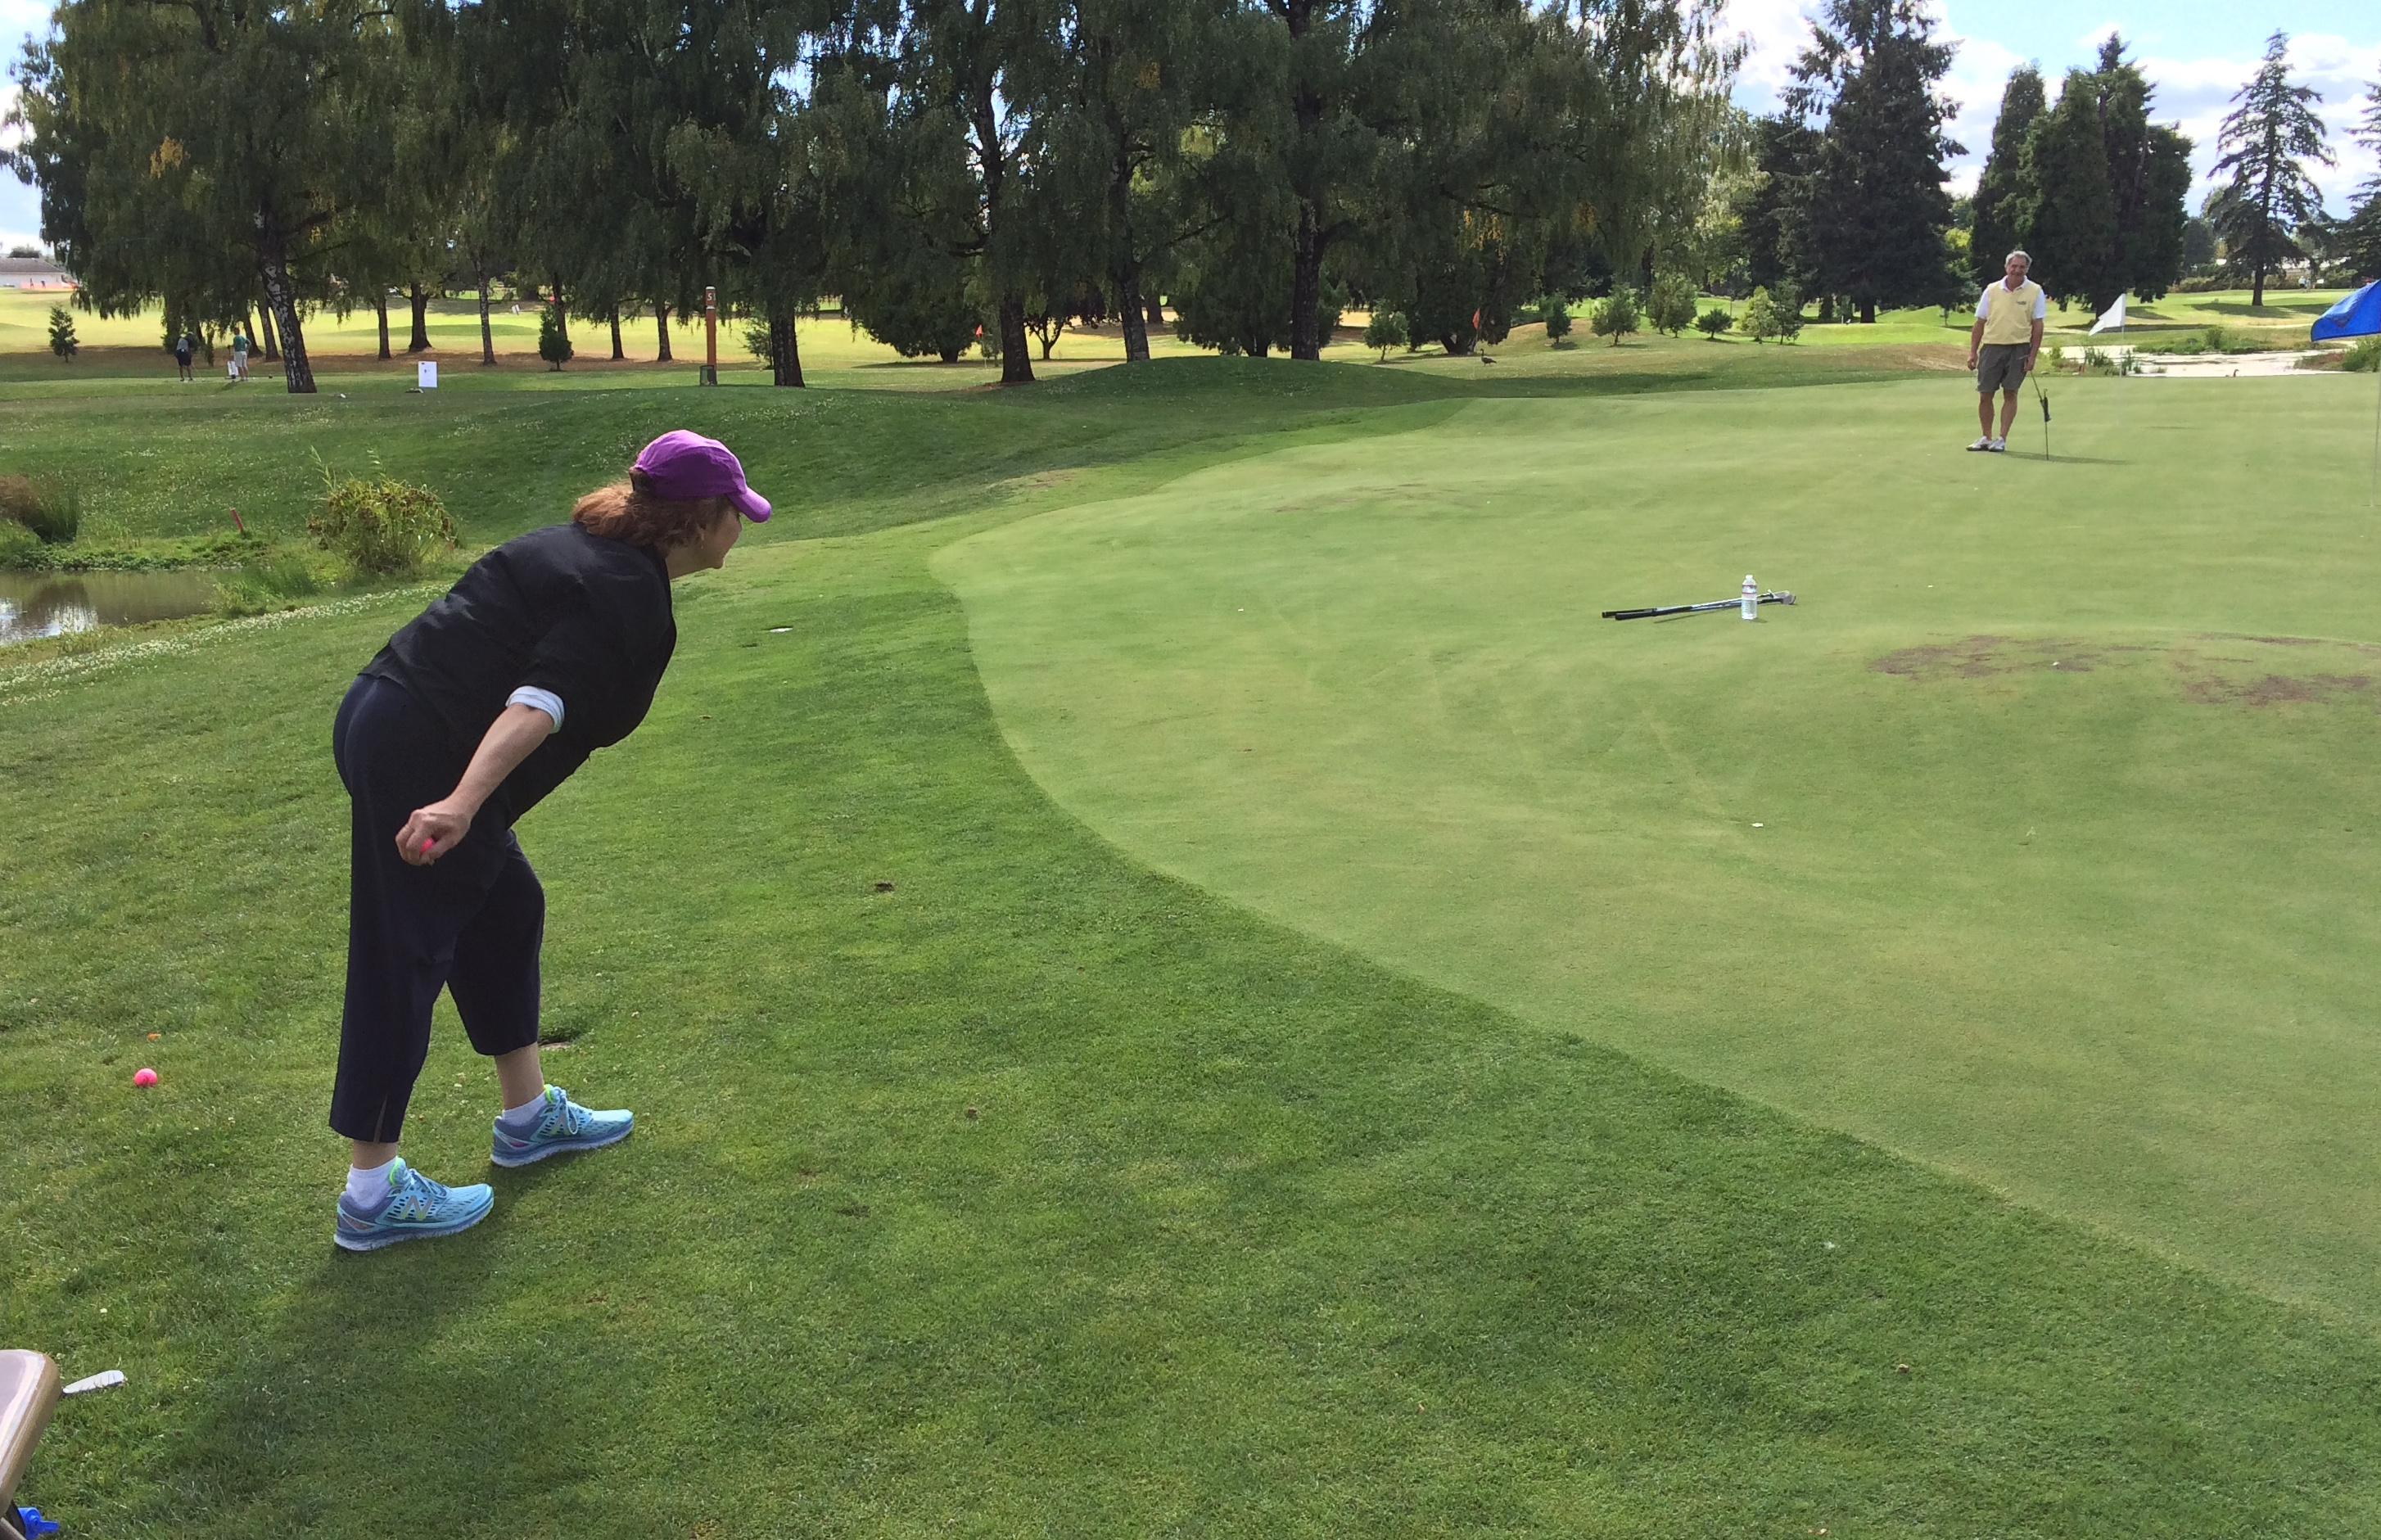 Putting for Purpose